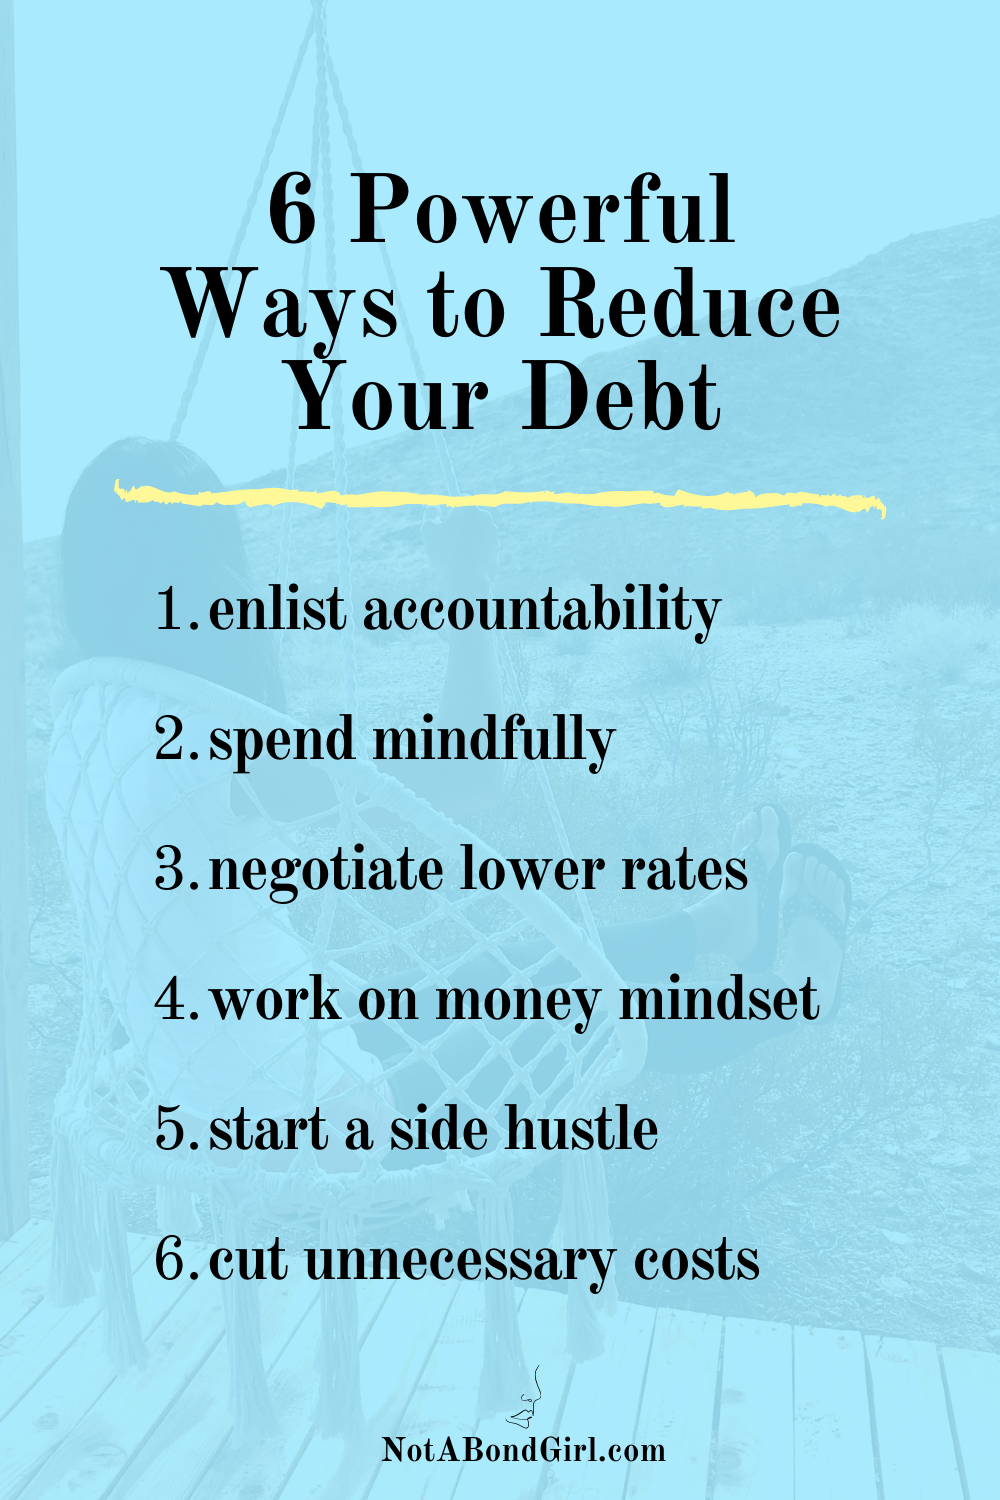 6 Powerful Ways to Reduce Your Debt